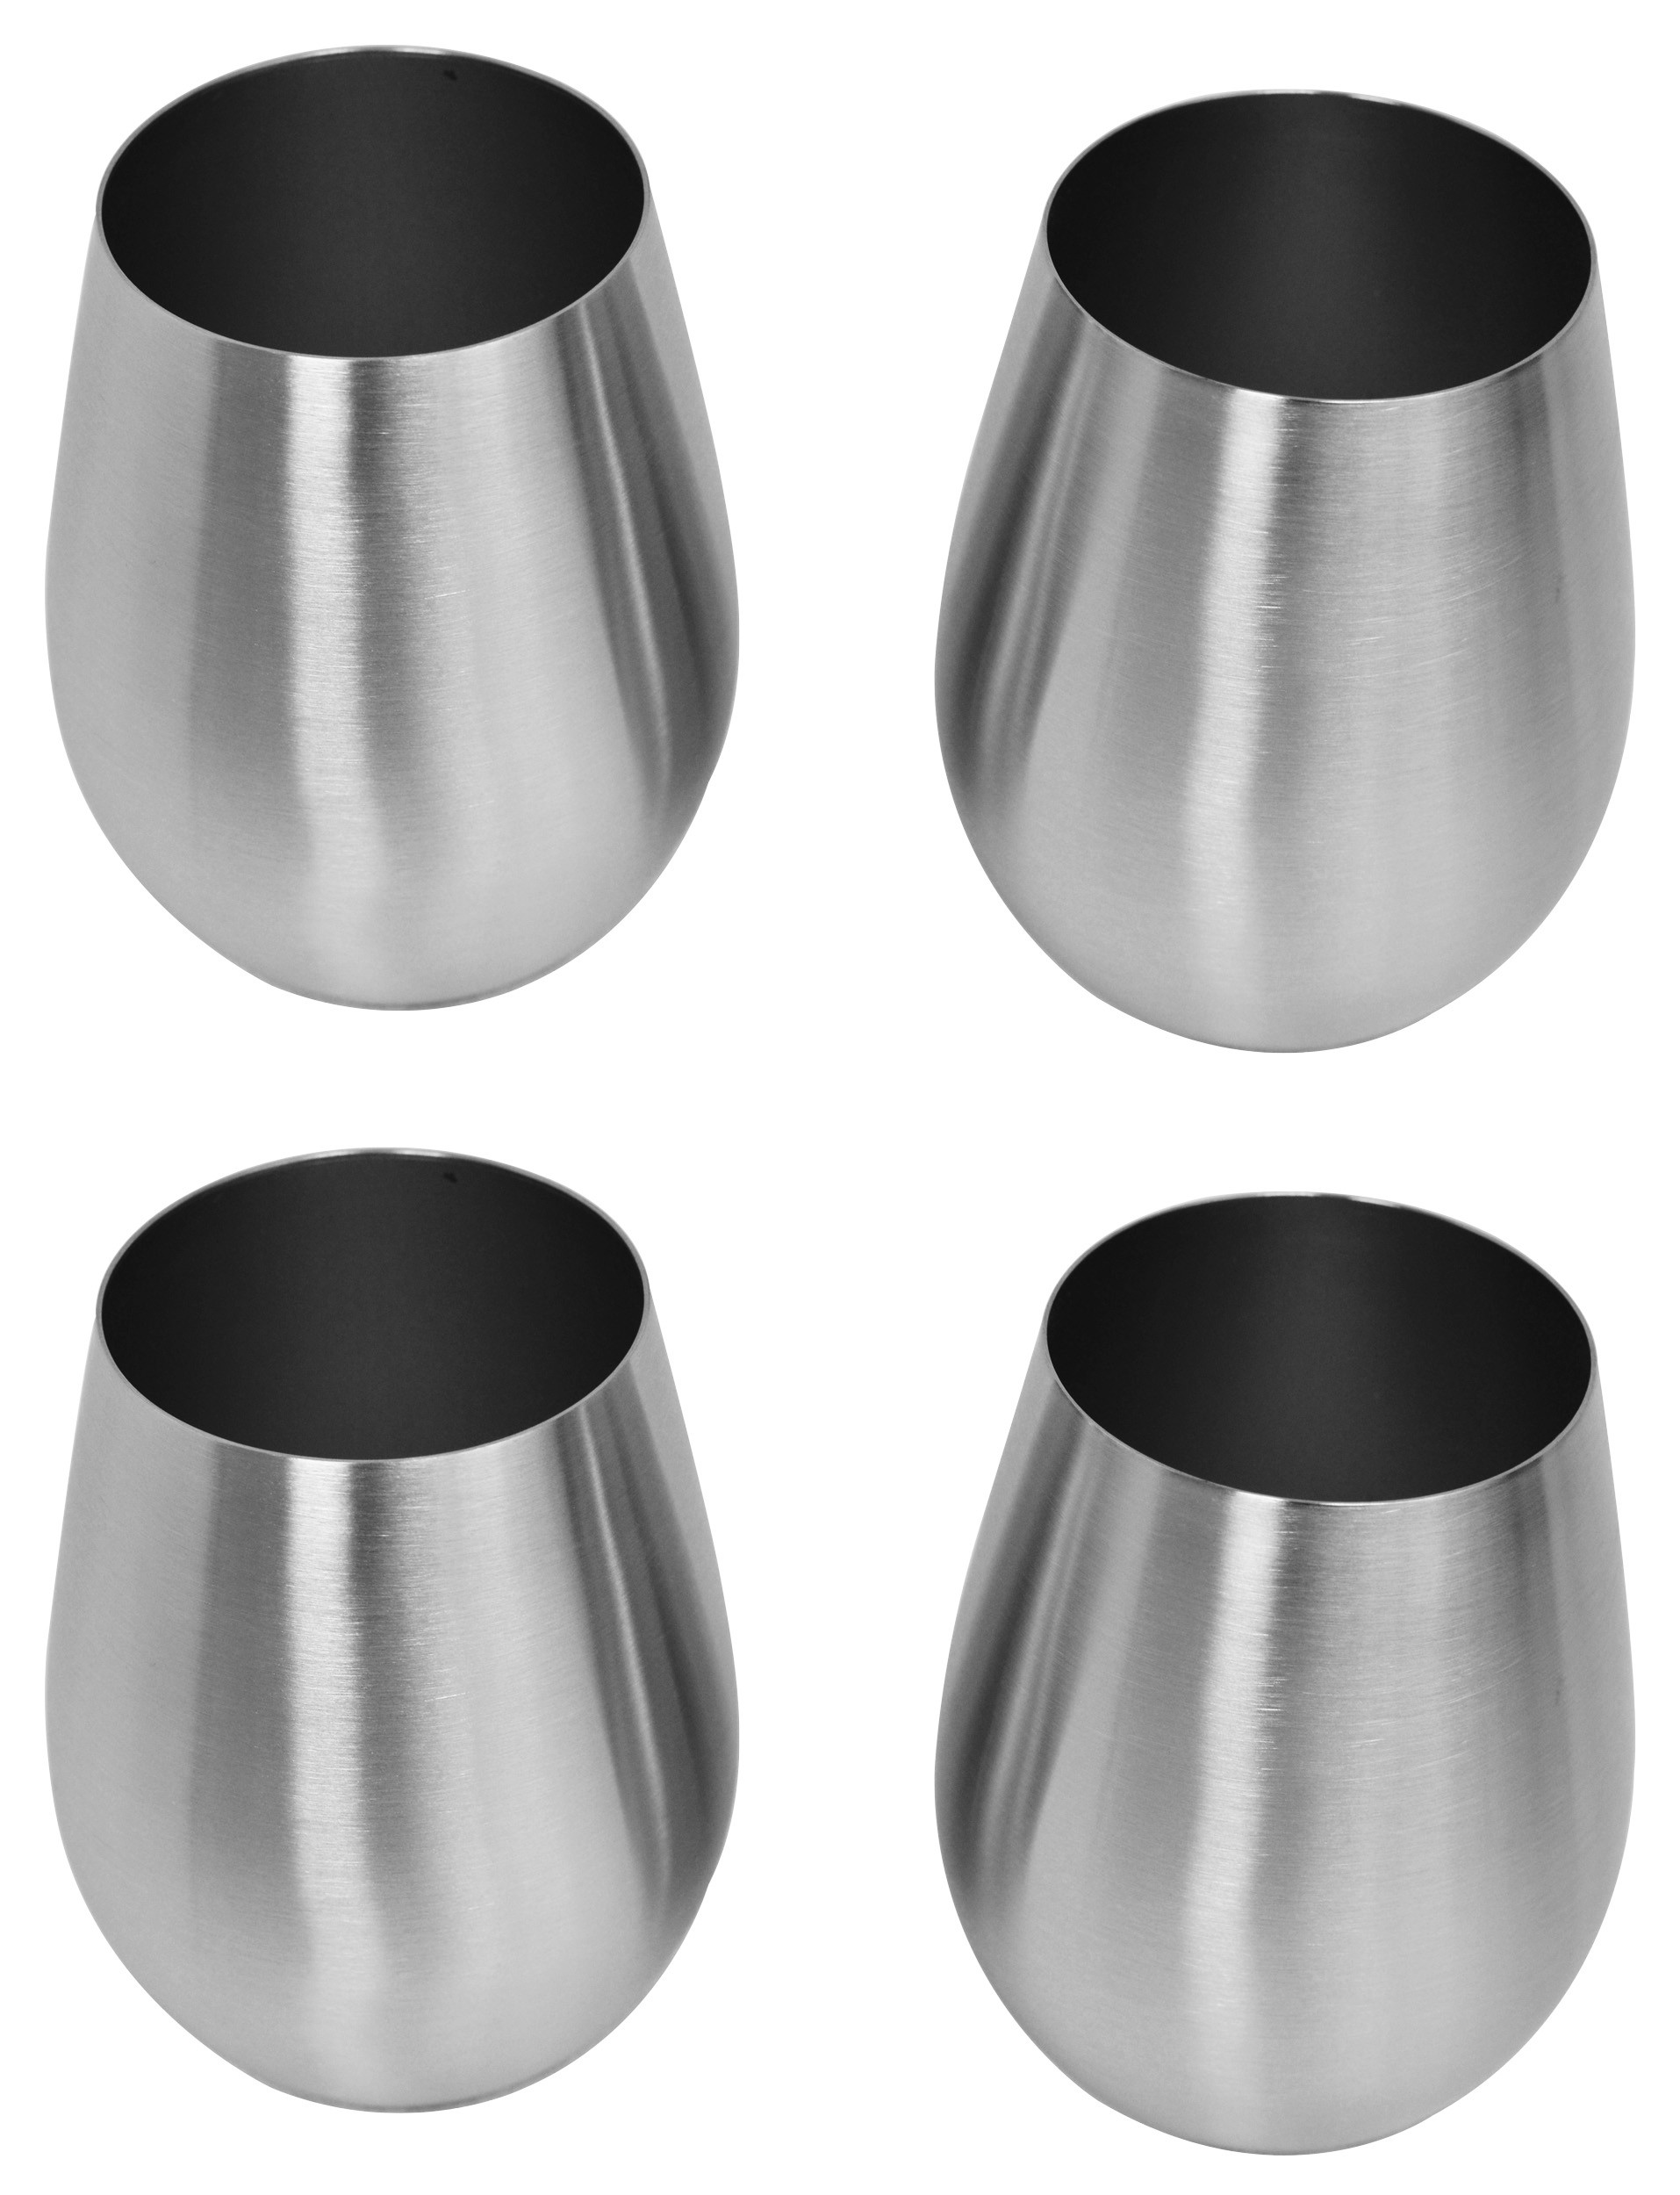 Stainless Stemless Wine Glass, Set of 2, Pack of 2